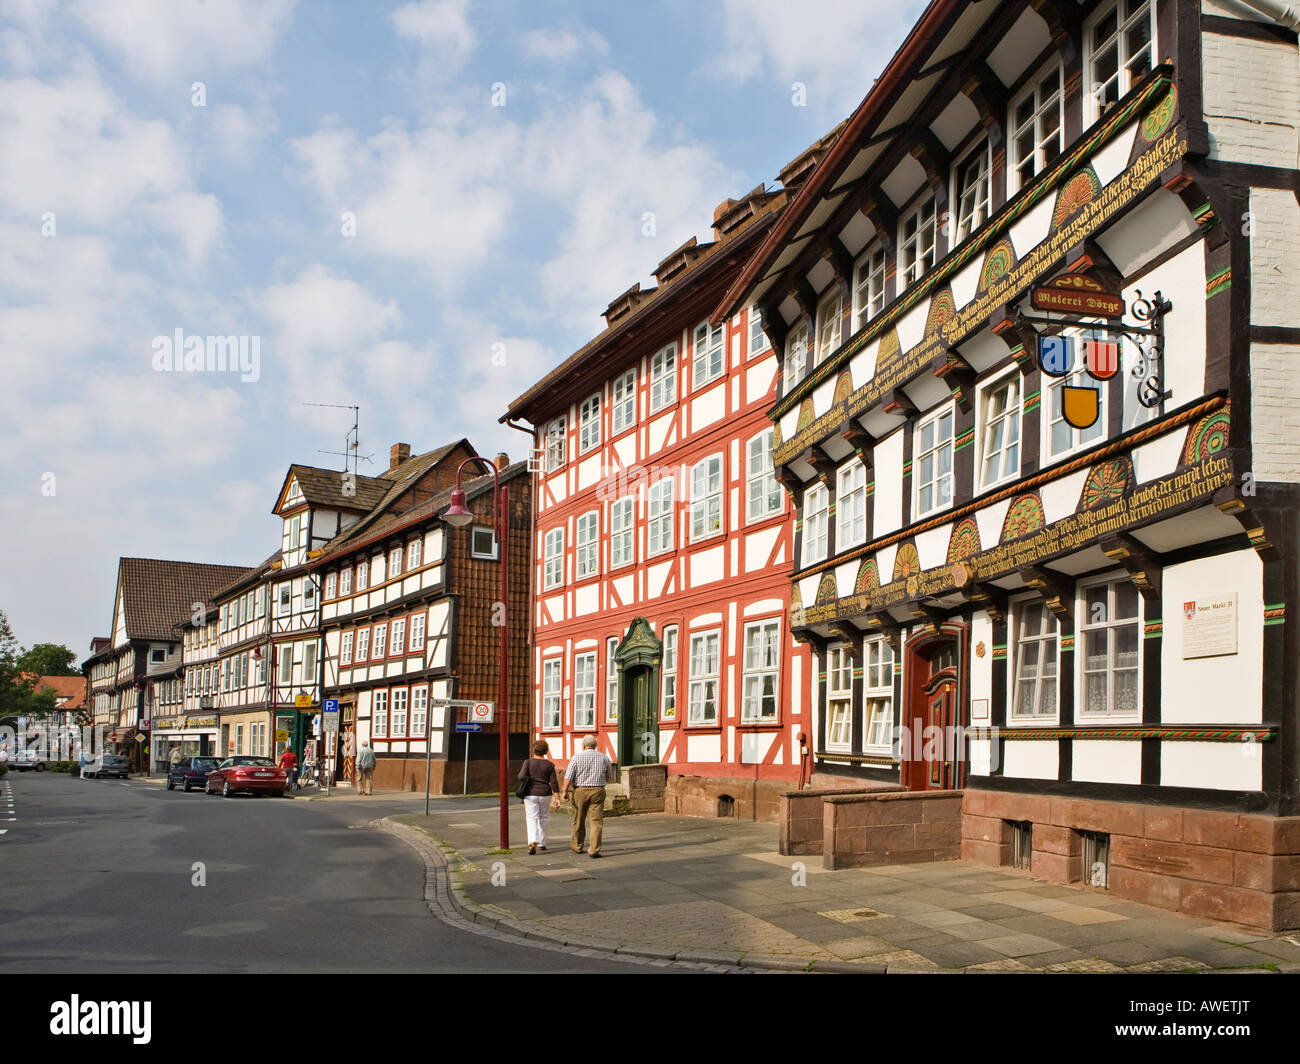 Renaissance townhouse built 1611 (ight) and Rococo townhouse built 1769 (left), Einbeck, Lower Saxony, Germany, - Stock Image